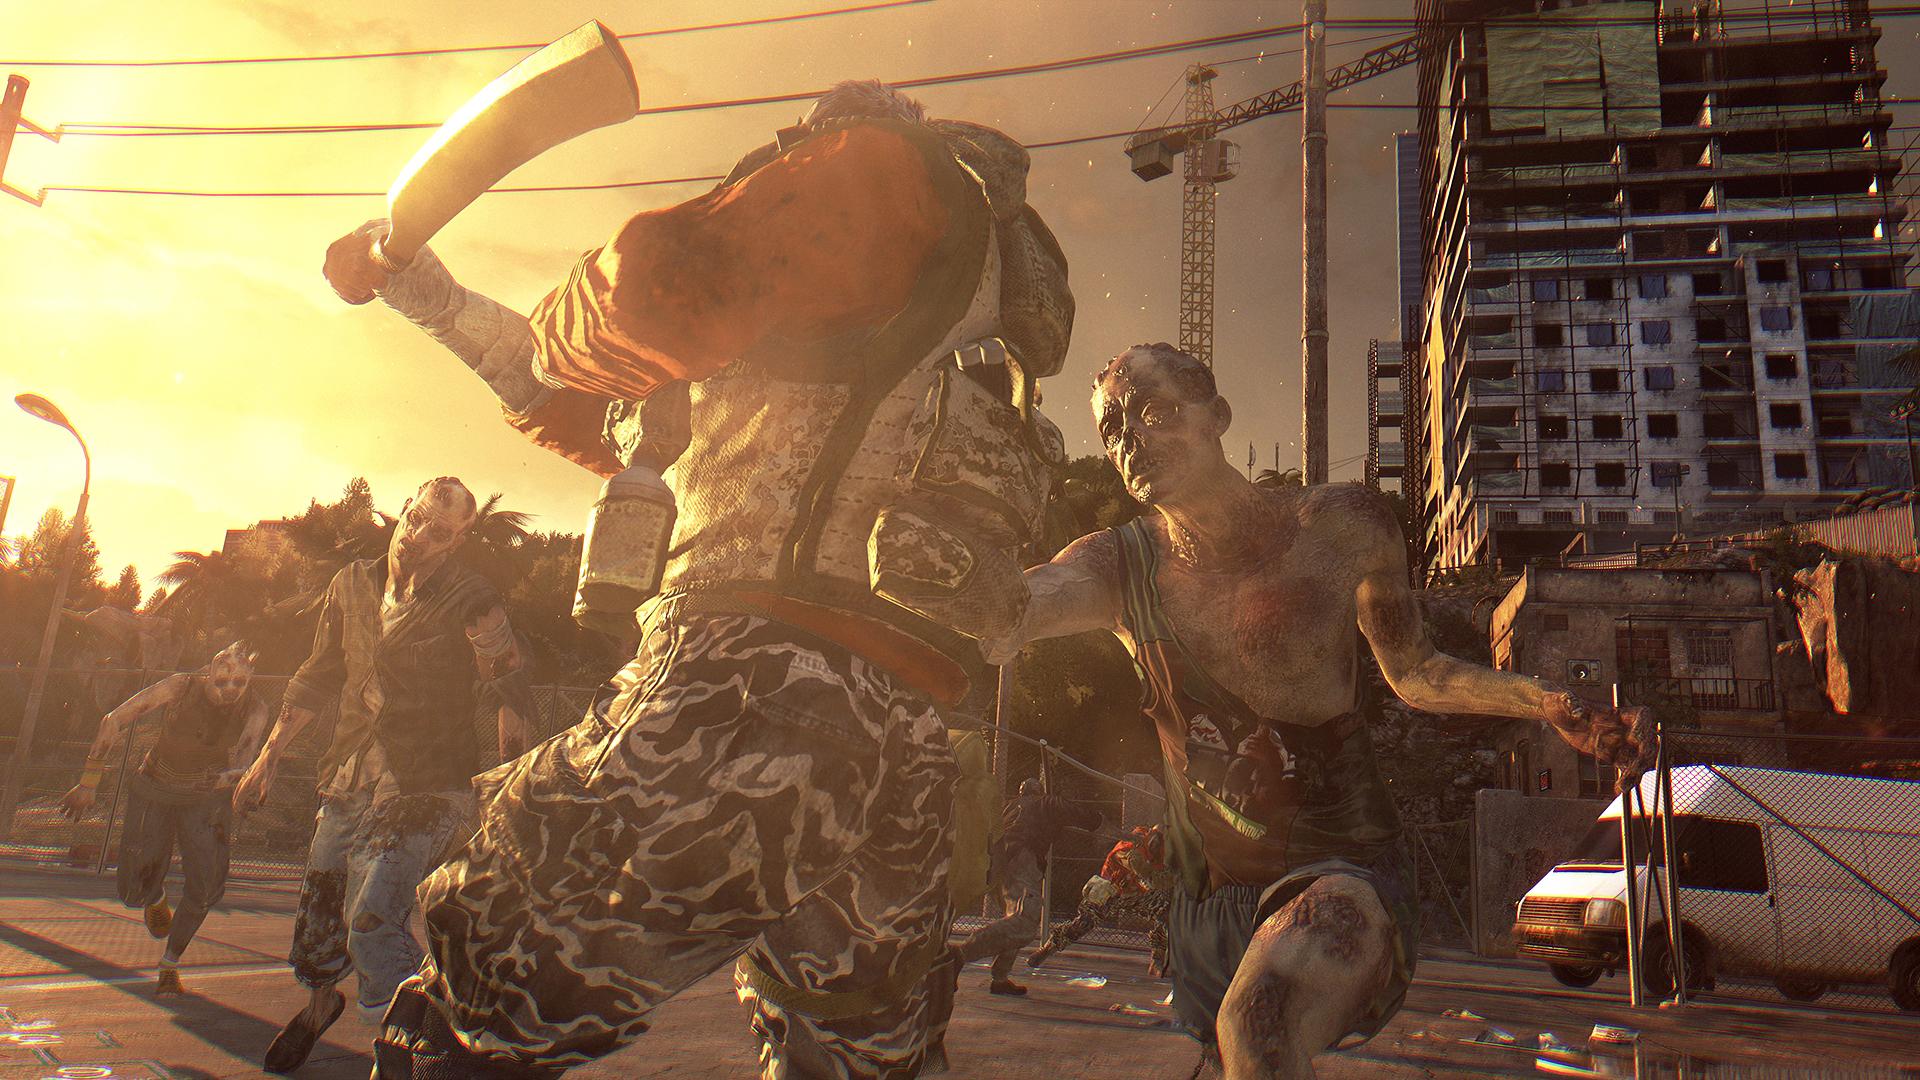 Inspired Dying Light Game Announced